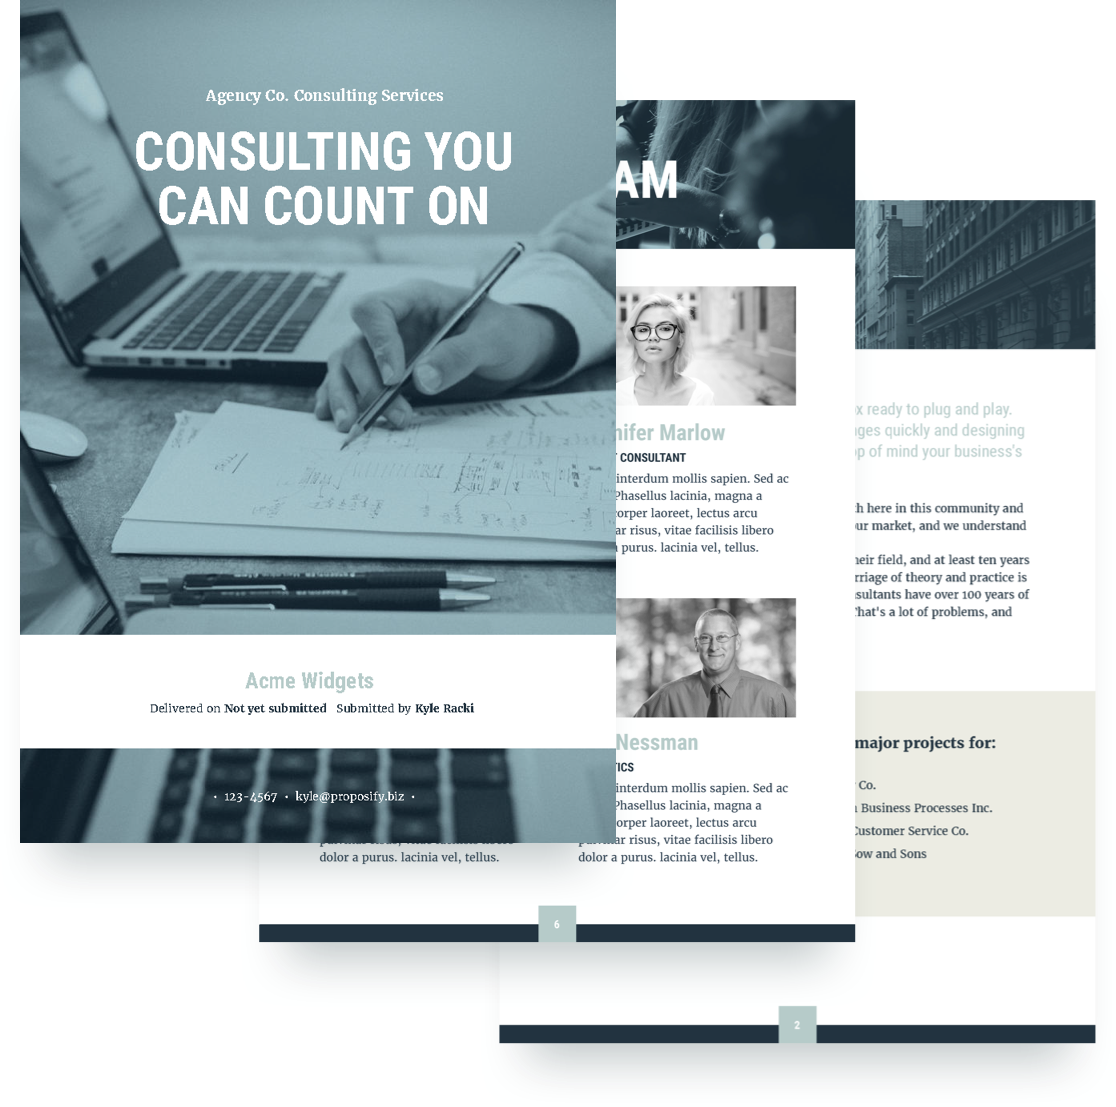 Consulting proposal template free sample proposify for Design consultancy